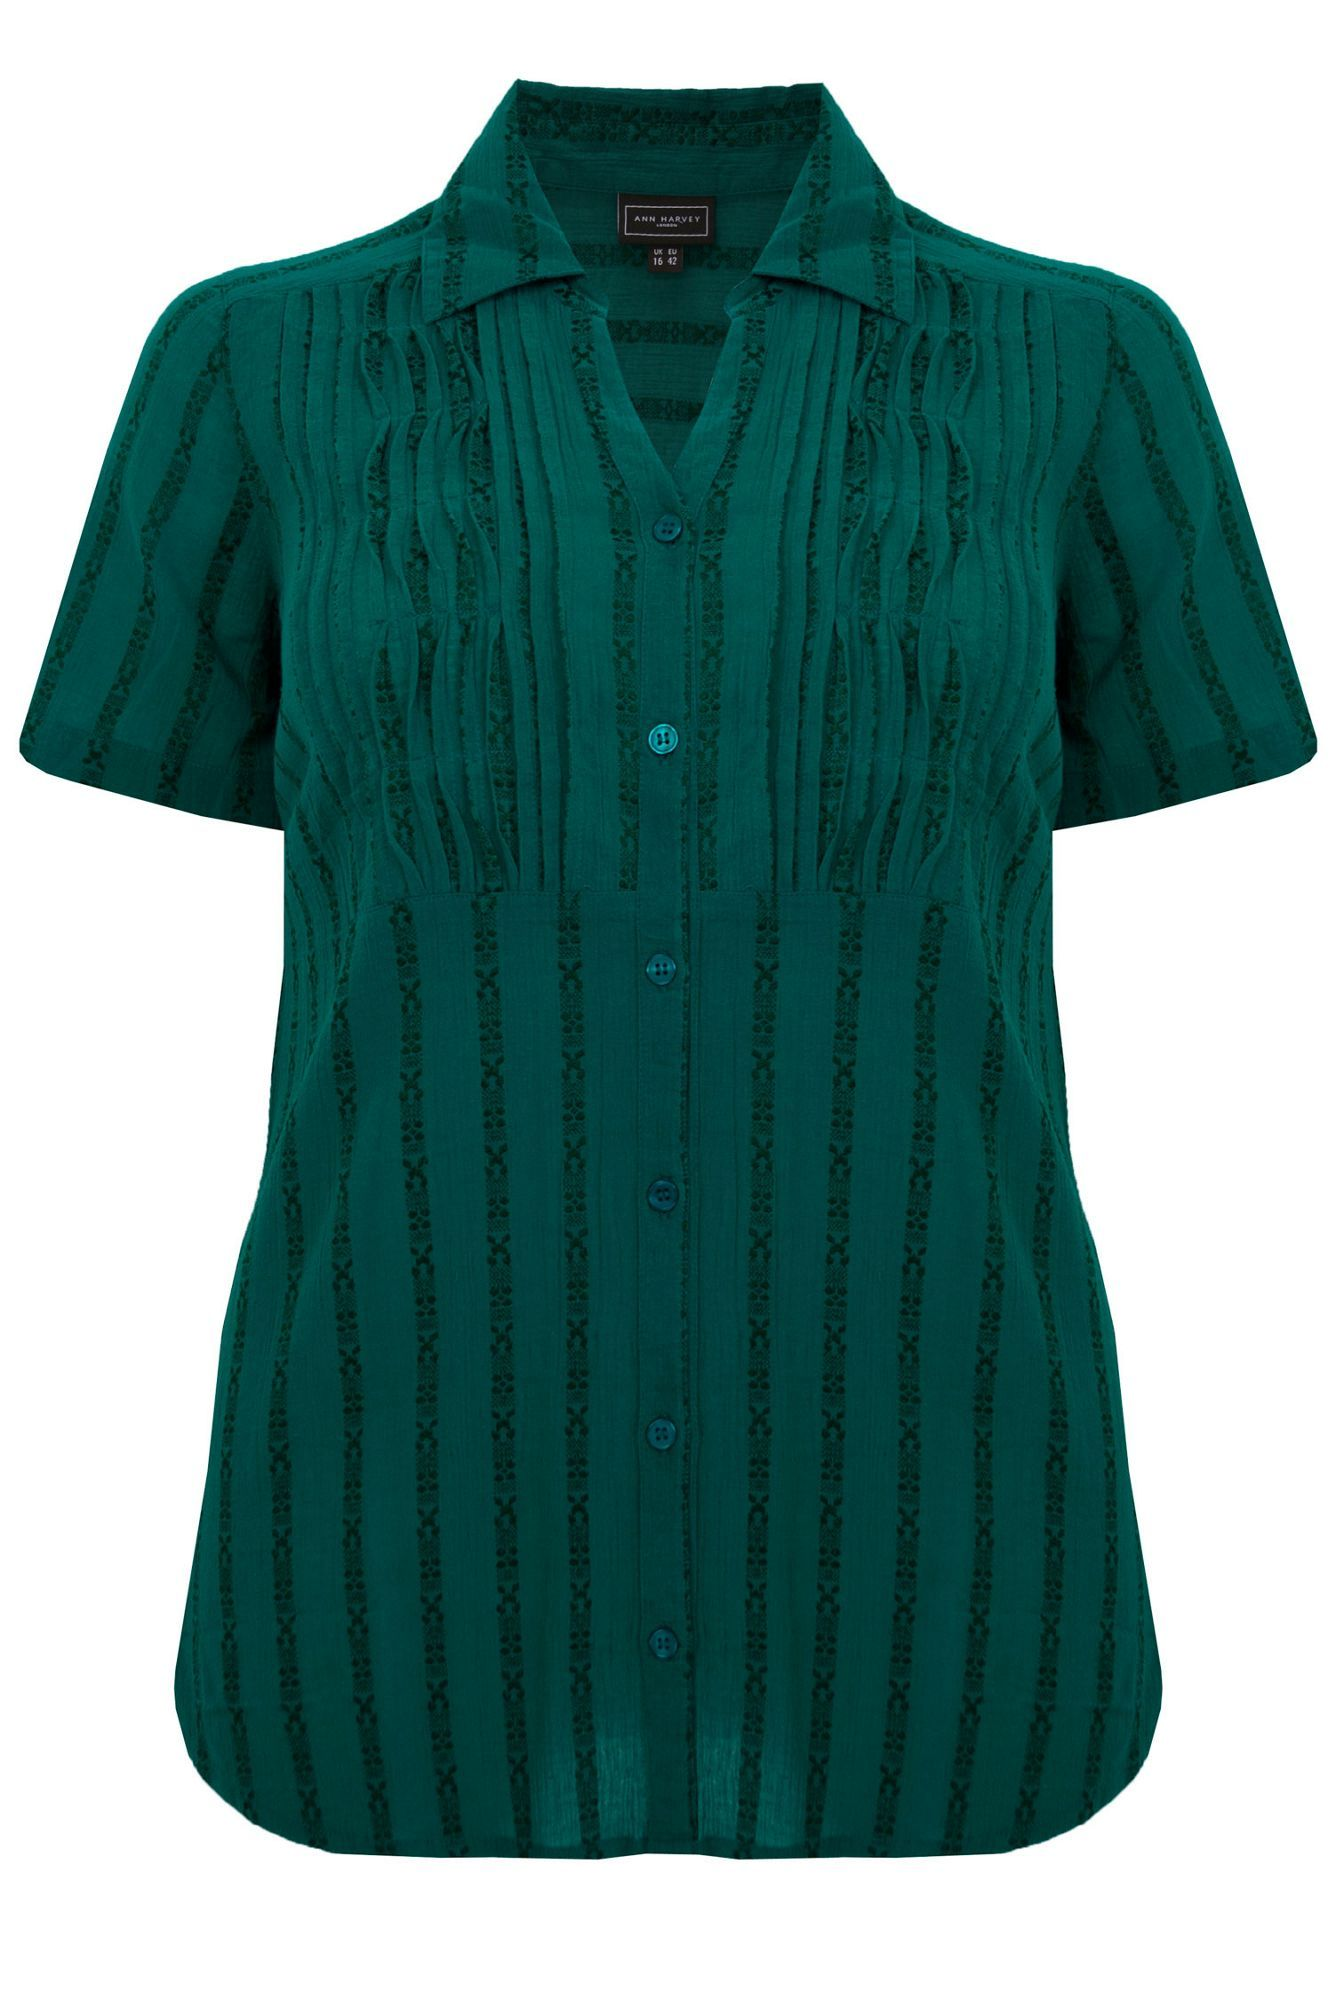 Women's Teal Pintuck Blouse, Teal - neckline: shirt collar/peter pan/zip with opening; sleeve style: capped; pattern: plain, striped; style: blouse; predominant colour: dark green; occasions: casual, work; length: standard; fibres: cotton - mix; material texture: jersey; fit: body skimming; sleeve length: short sleeve; pattern type: fabric; pattern size: standard; texture group: jersey - stretchy/drapey